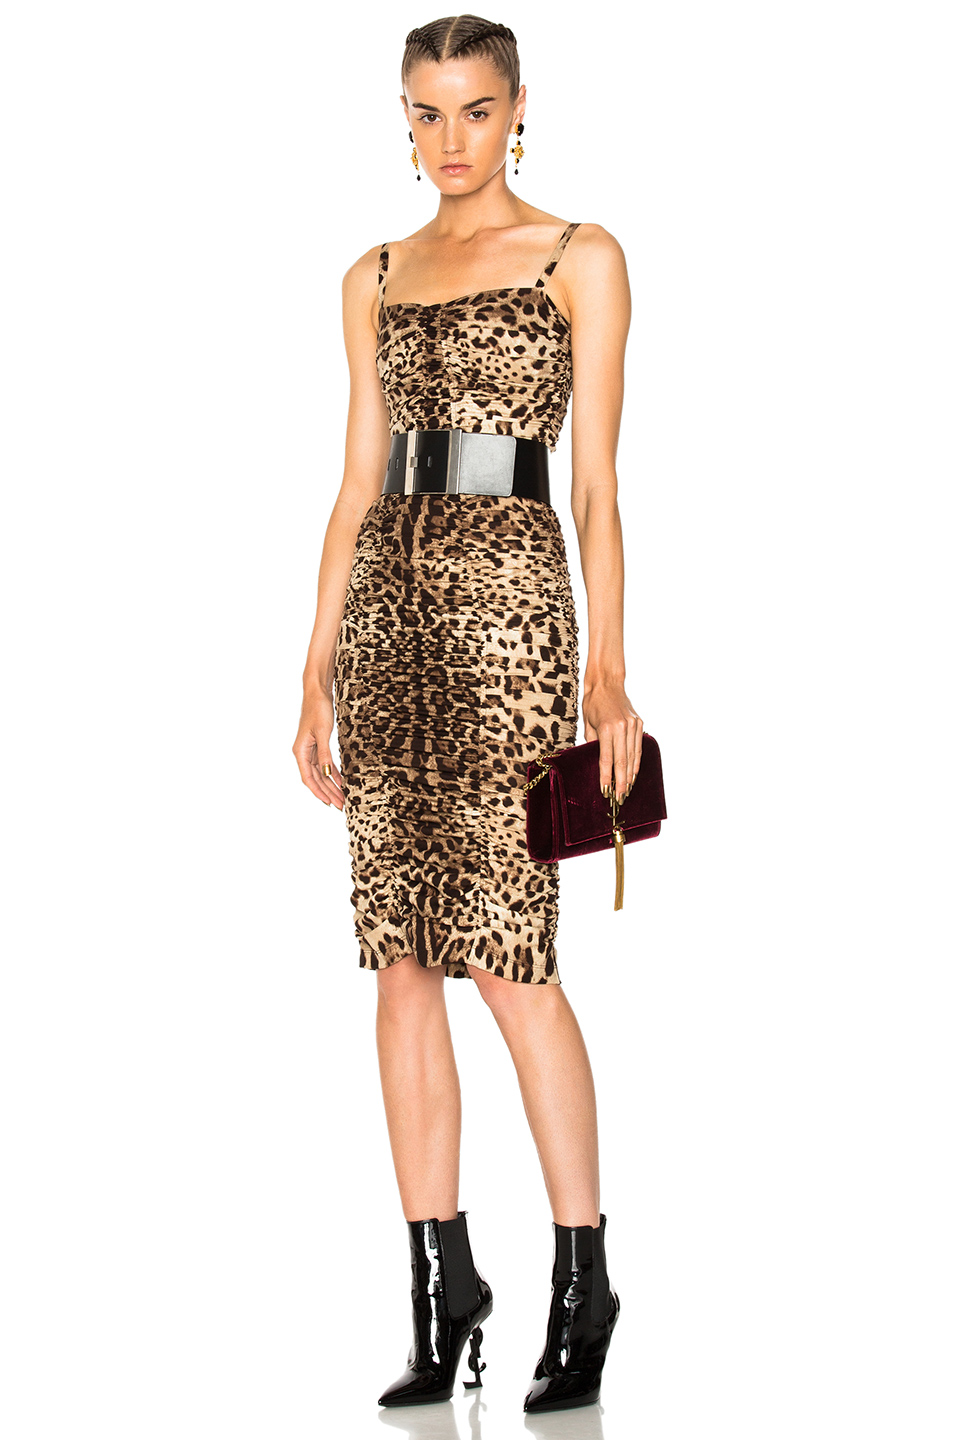 Dolce & Gabbana Printed Ruched Tank Dress in Animal Print,Brown,Neutrals